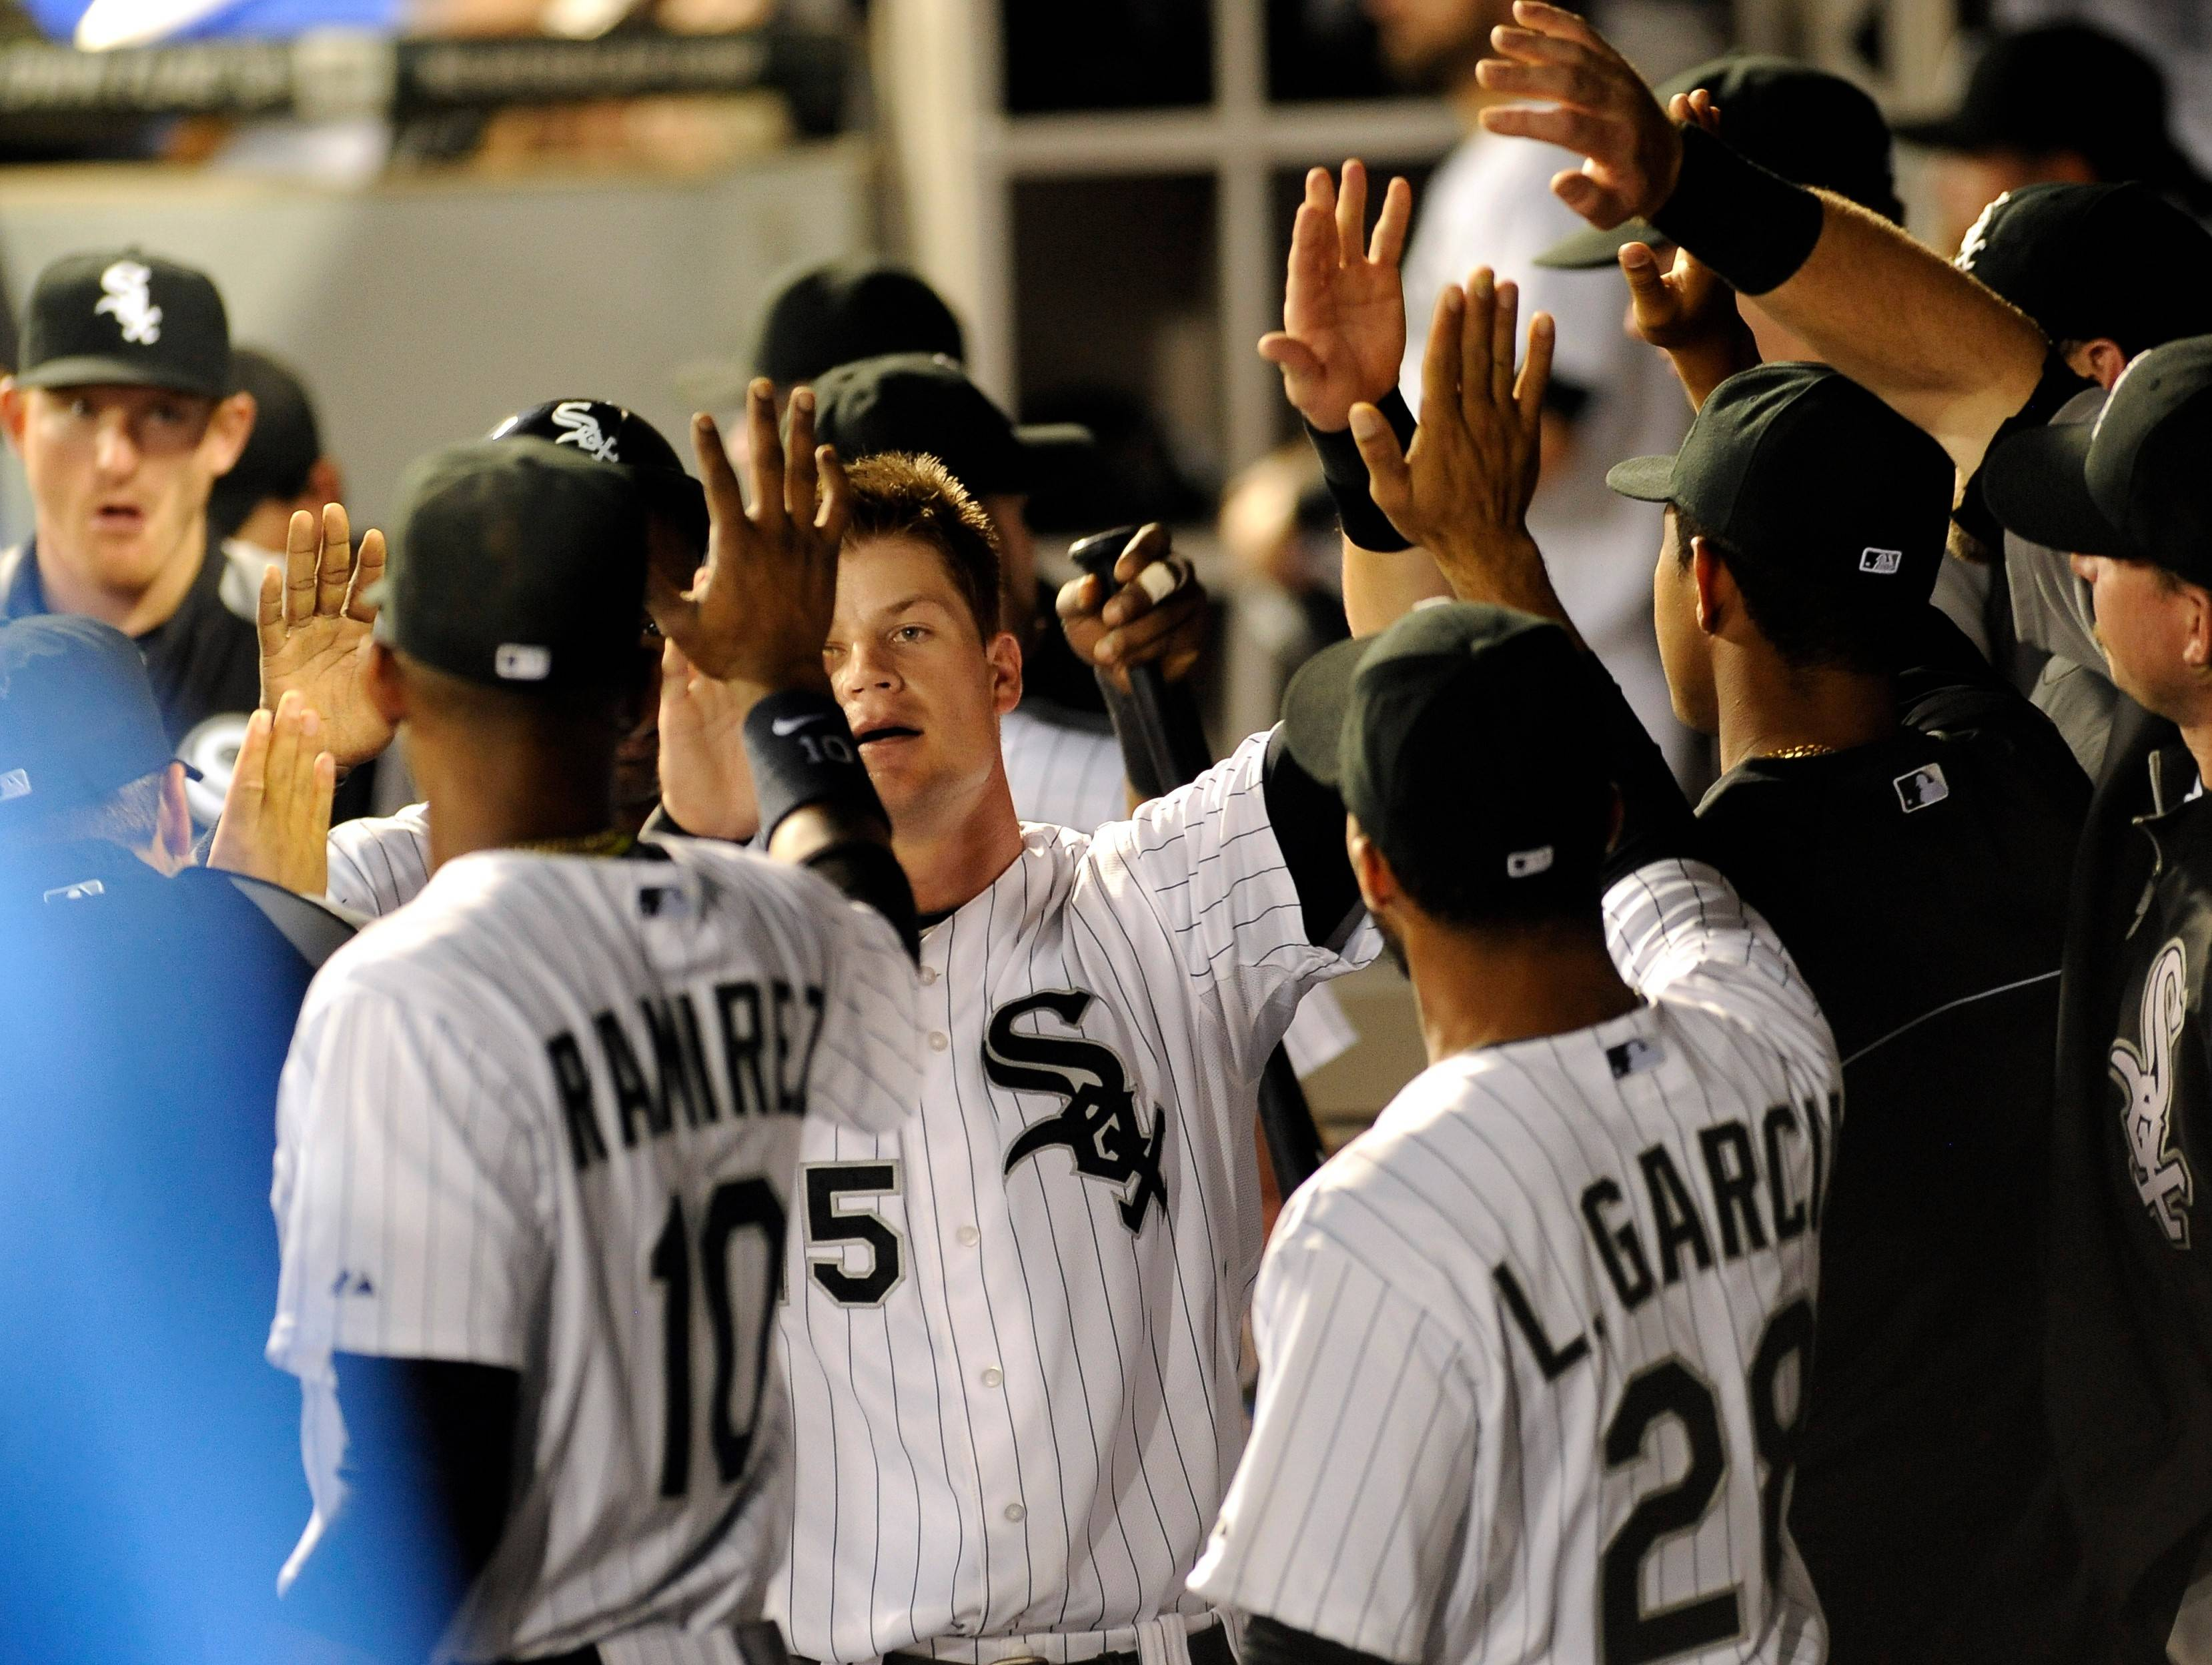 Gordan Beckham celebrates in the White Sox' dugout after scoring a run in a game against the Tigers late last season.